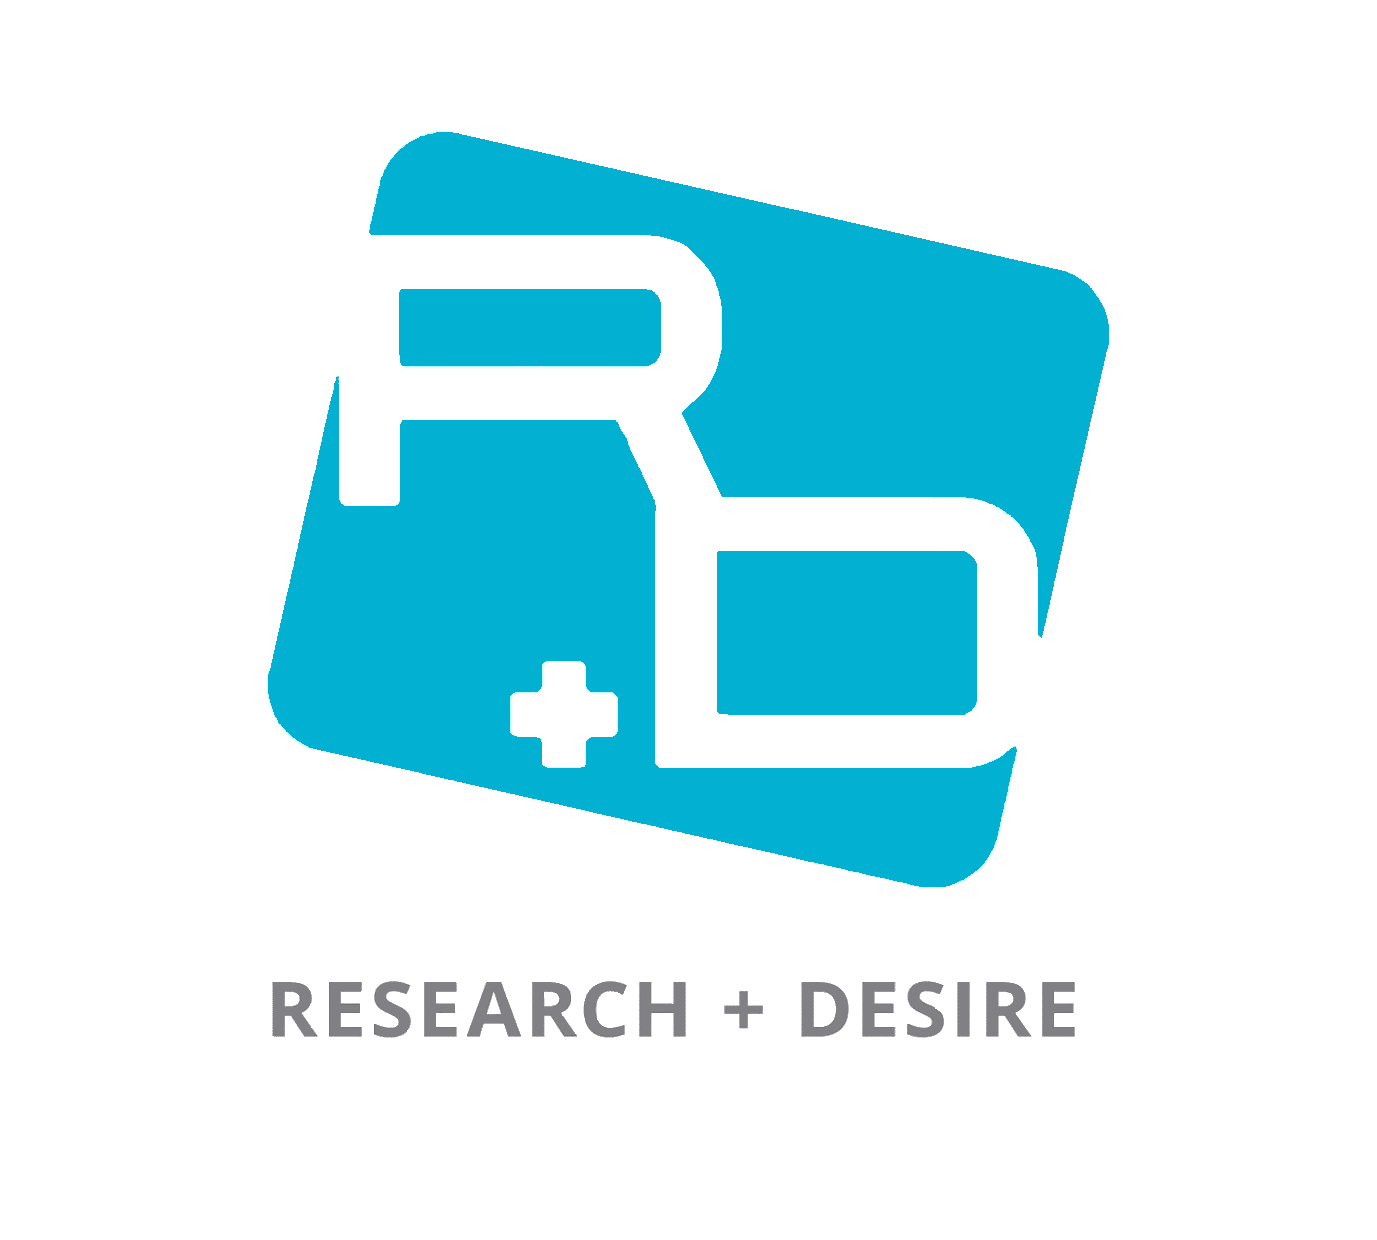 Research and Desire